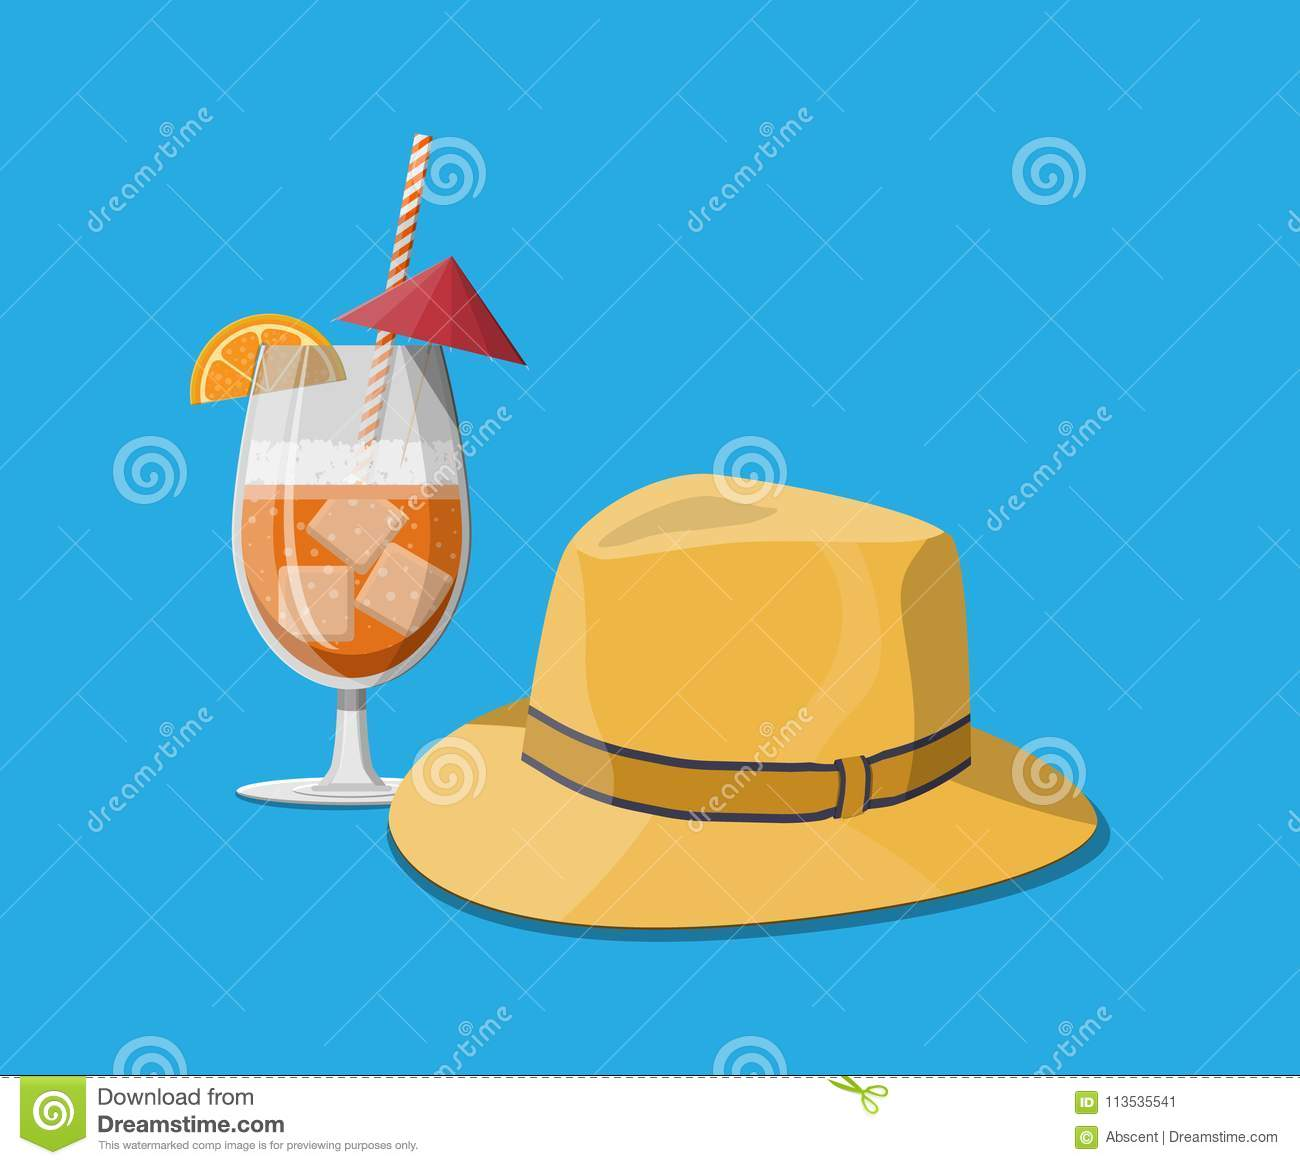 903cc1d90b5 Orange slice and umbrella. Lemonade or fruit juice with ice cubes.  Refreshment beach drink with straw. Men straw hat. Vector illustration in  flat style